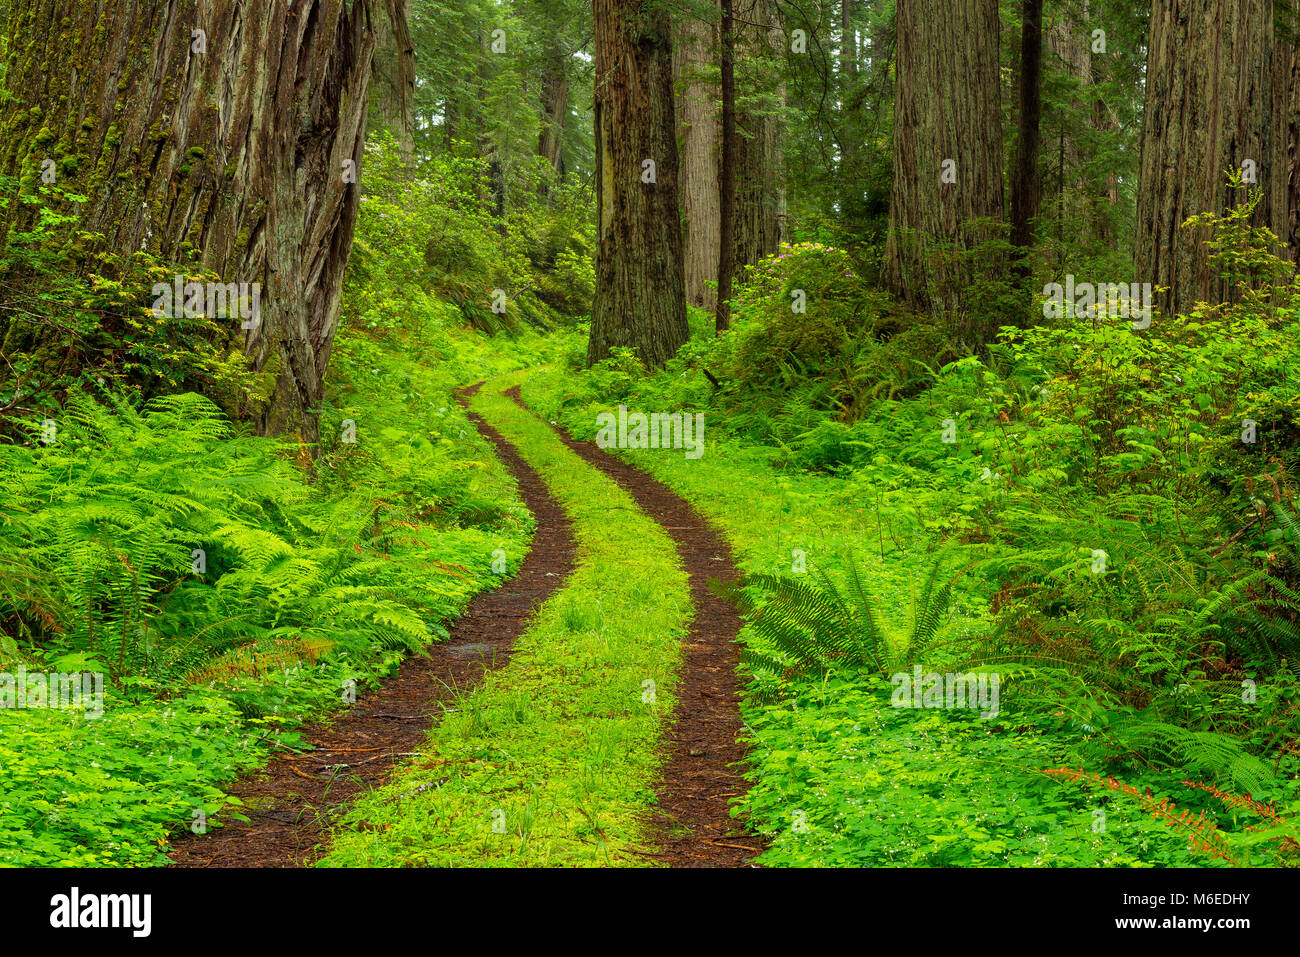 Forest Path, Redwoods, Damnation Creek, Del Norte Redwoods State Park, Cailfornia - Stock Image